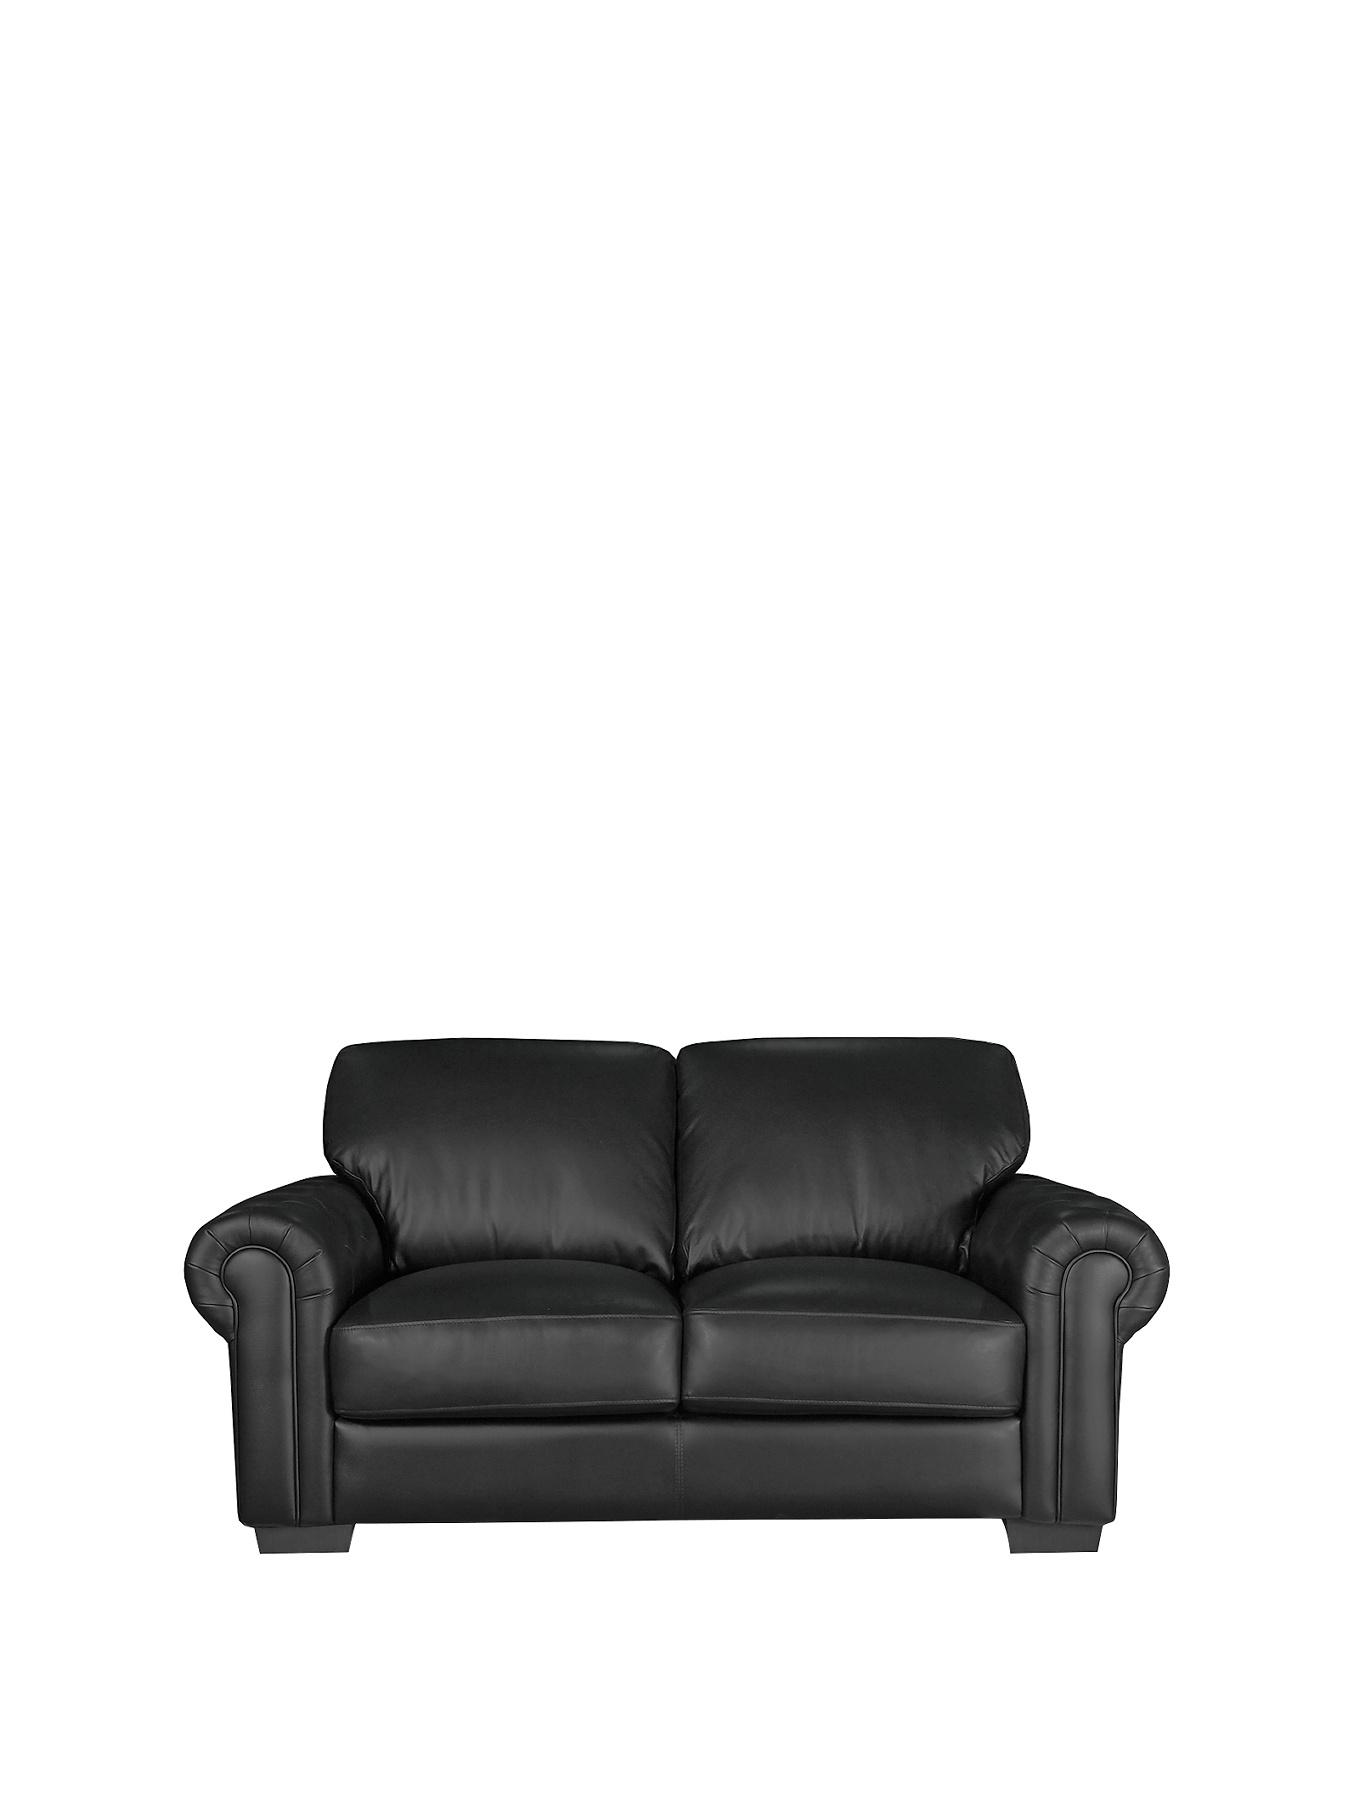 Augusta 2-Seater Sofa - Black, Black,Chocolate,Cream